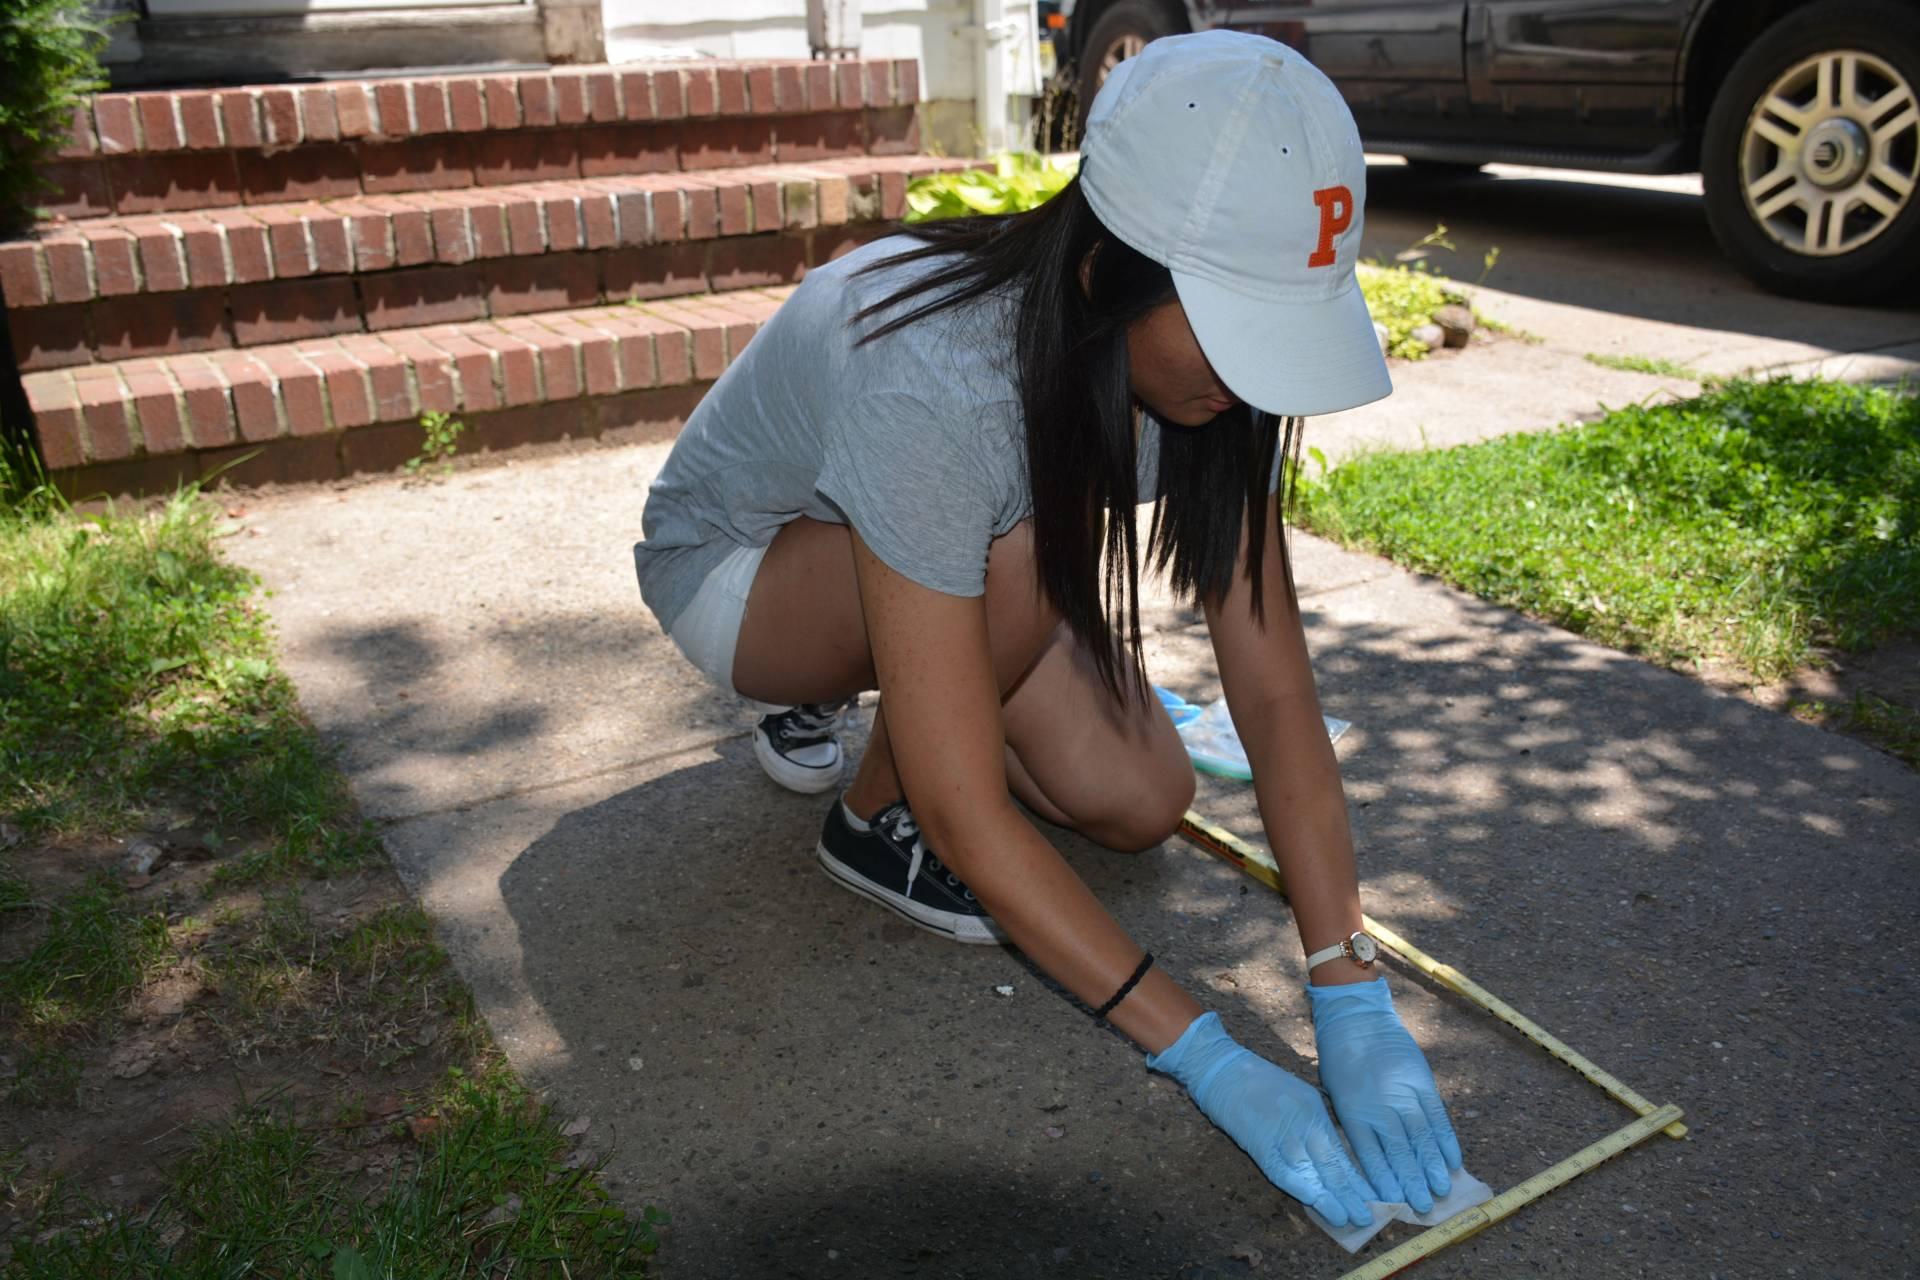 Student taking sample on sidewalk